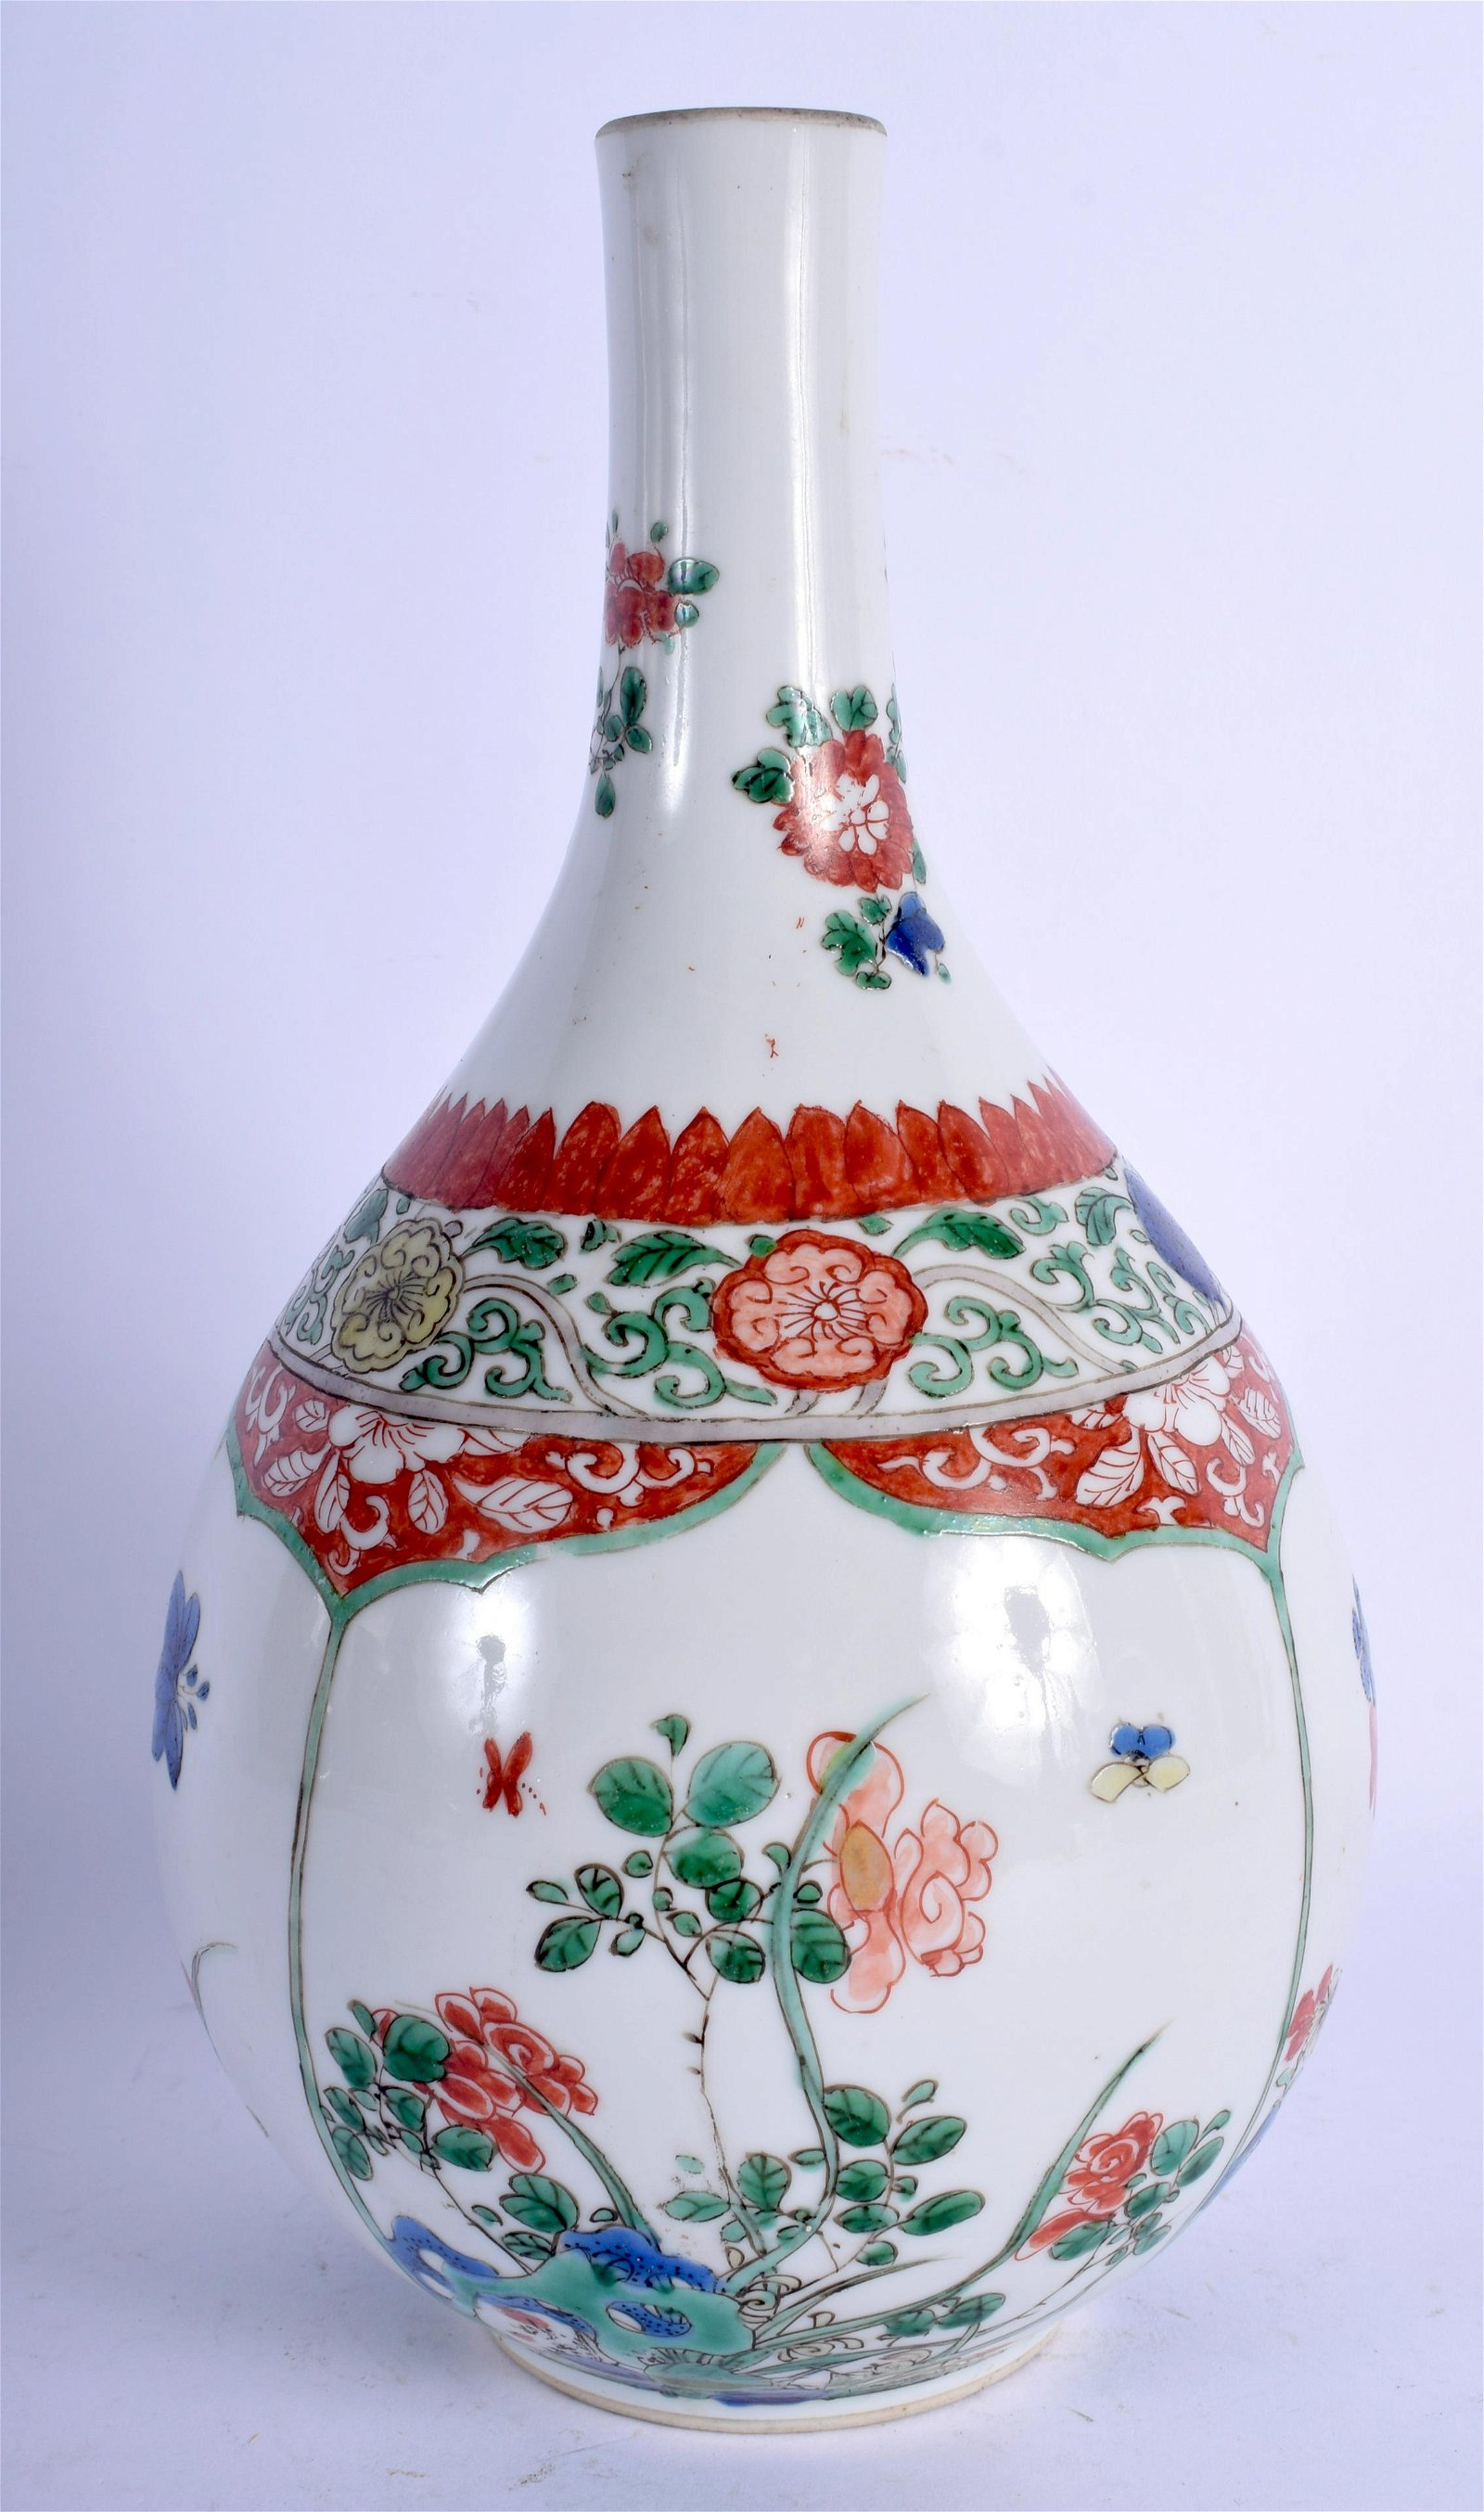 AN EARLY 18TH CENTURY CHINESE FAMILLE VERTE PORCELAIN